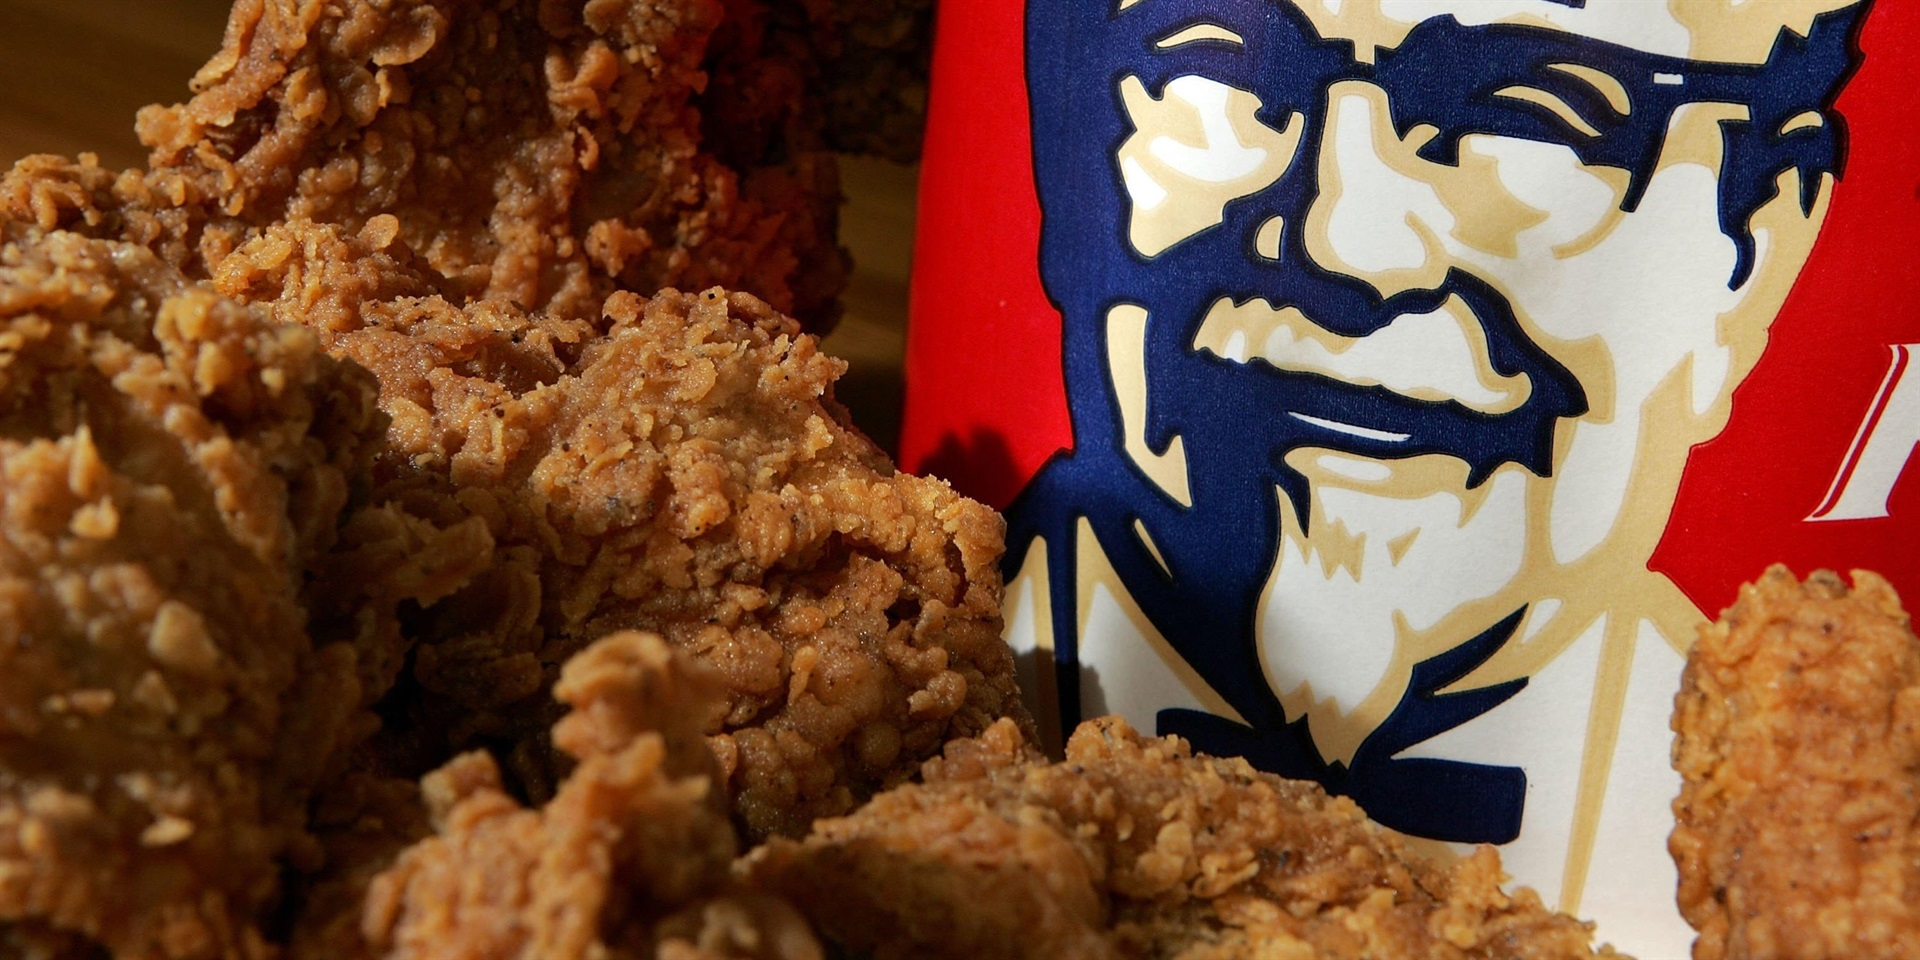 Late night trip to KFC costs group of VIC party-goers $26000